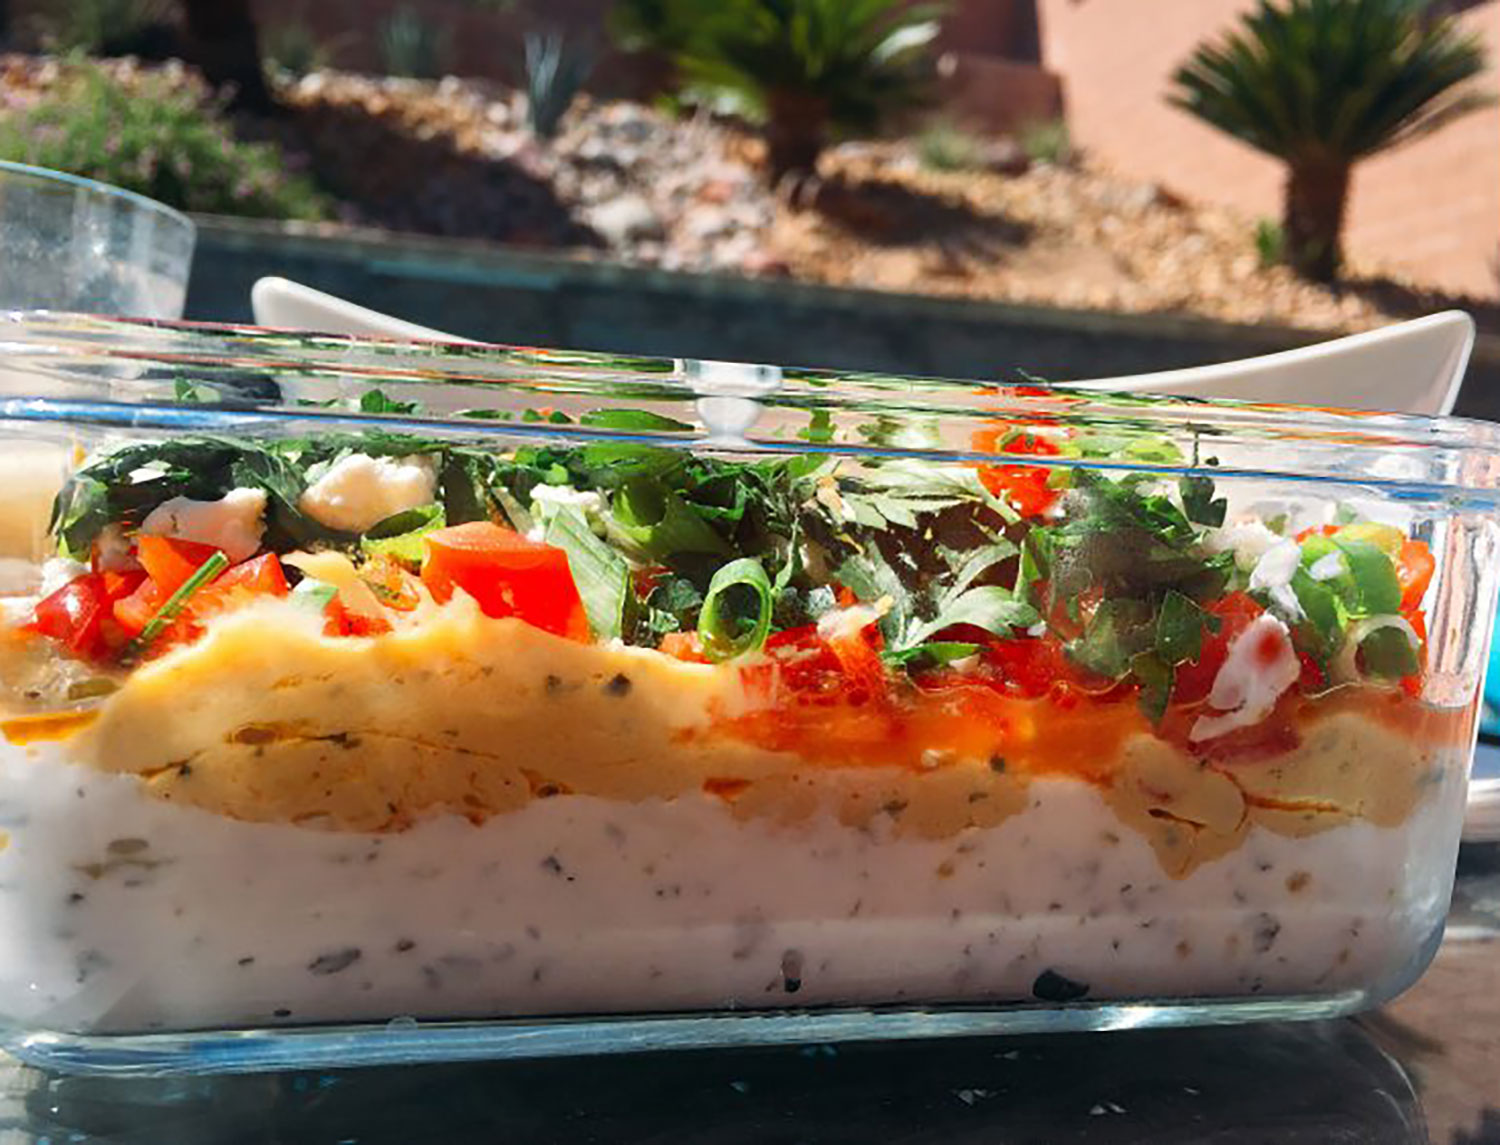 Low Fat 7 Layer Greek Dip. Look at those yummy colorful layers.